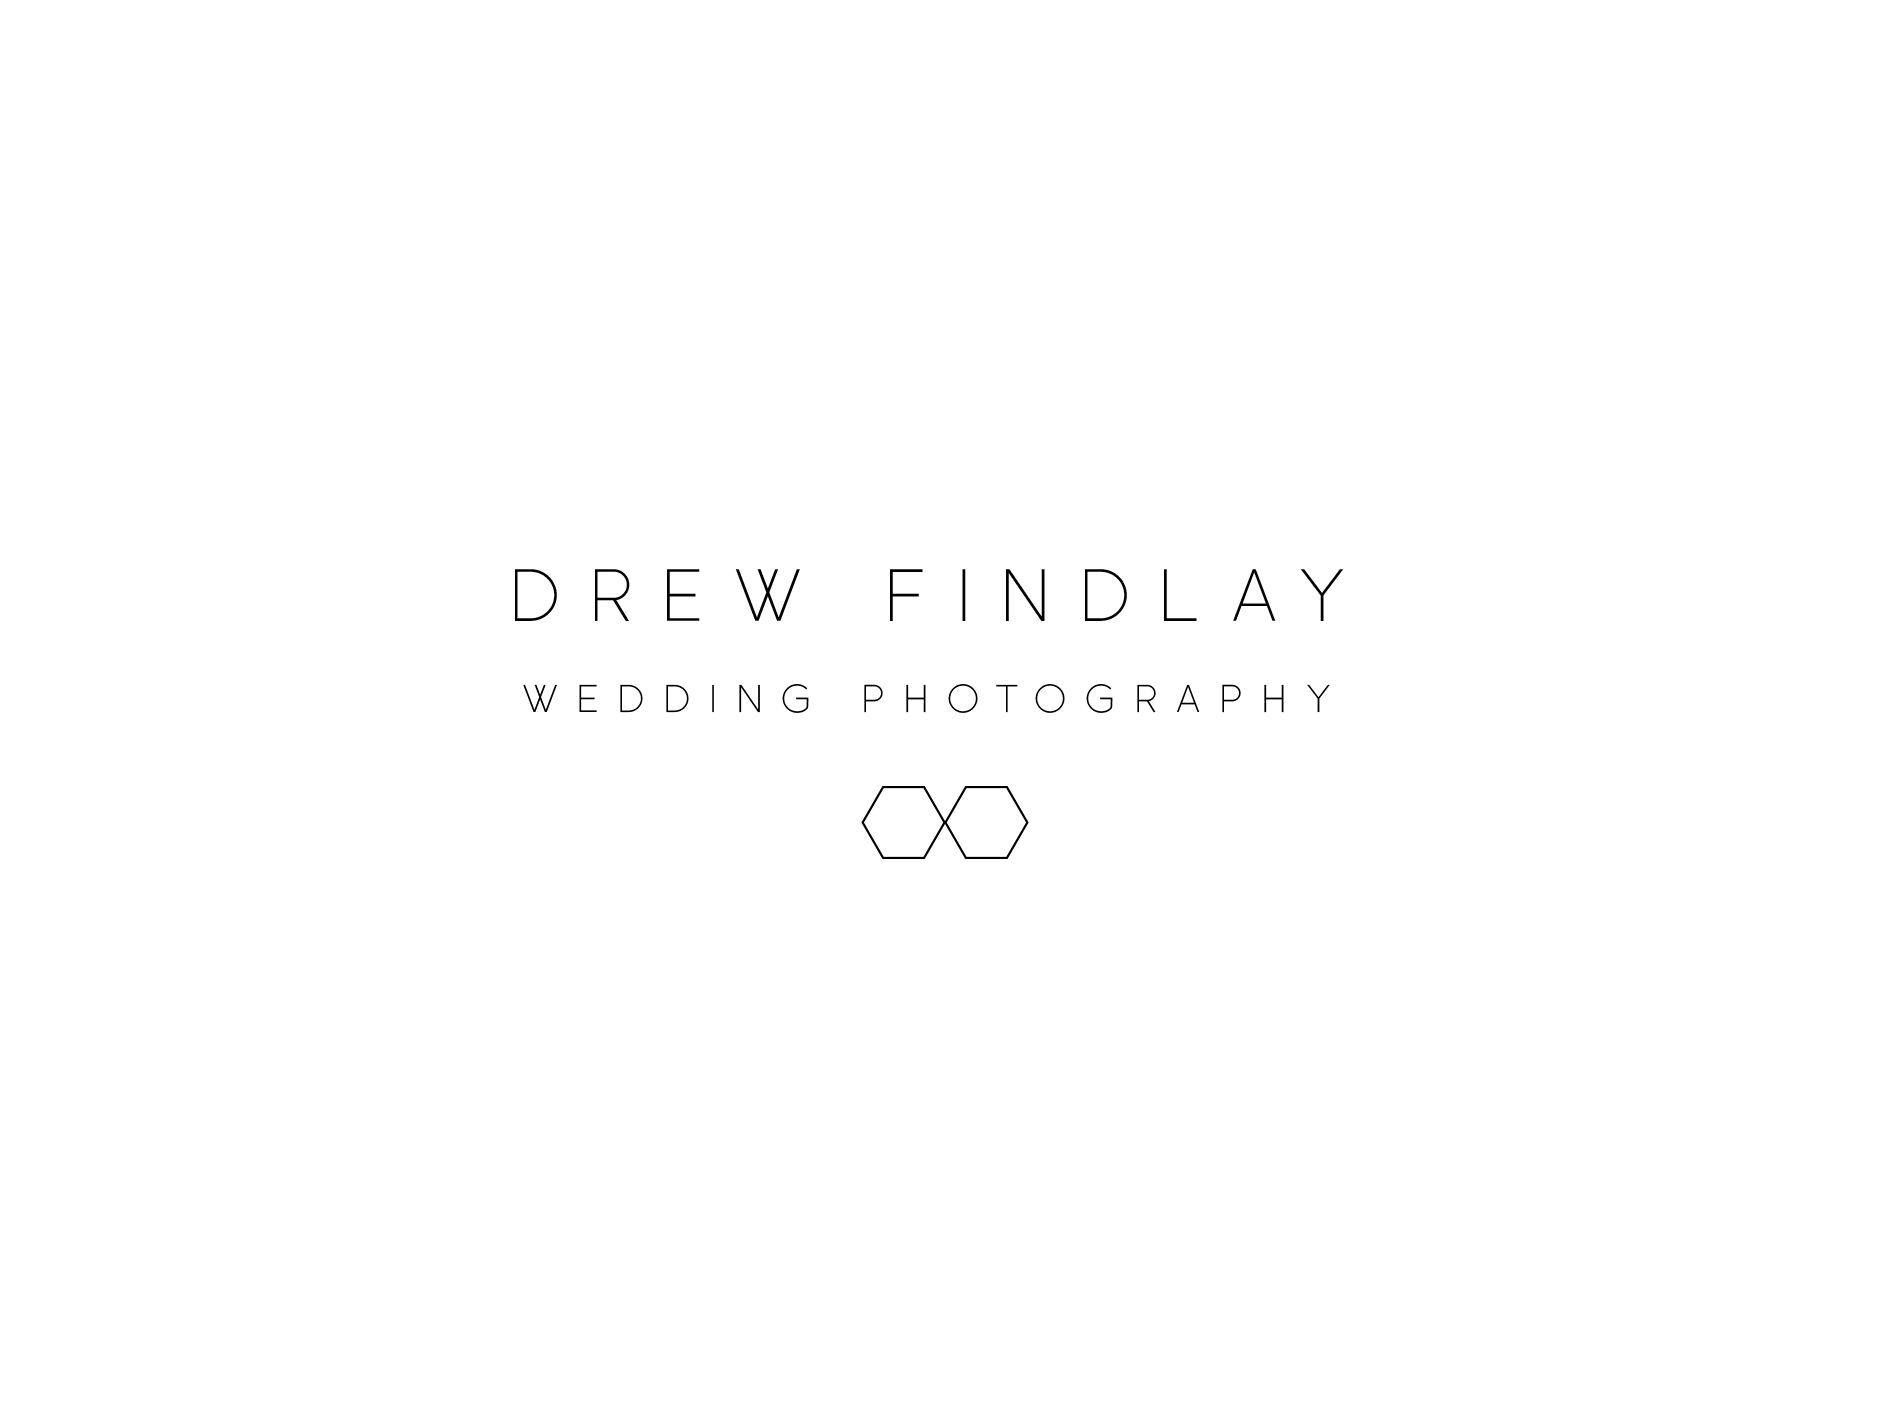 Drew Findlay Wedding Photography